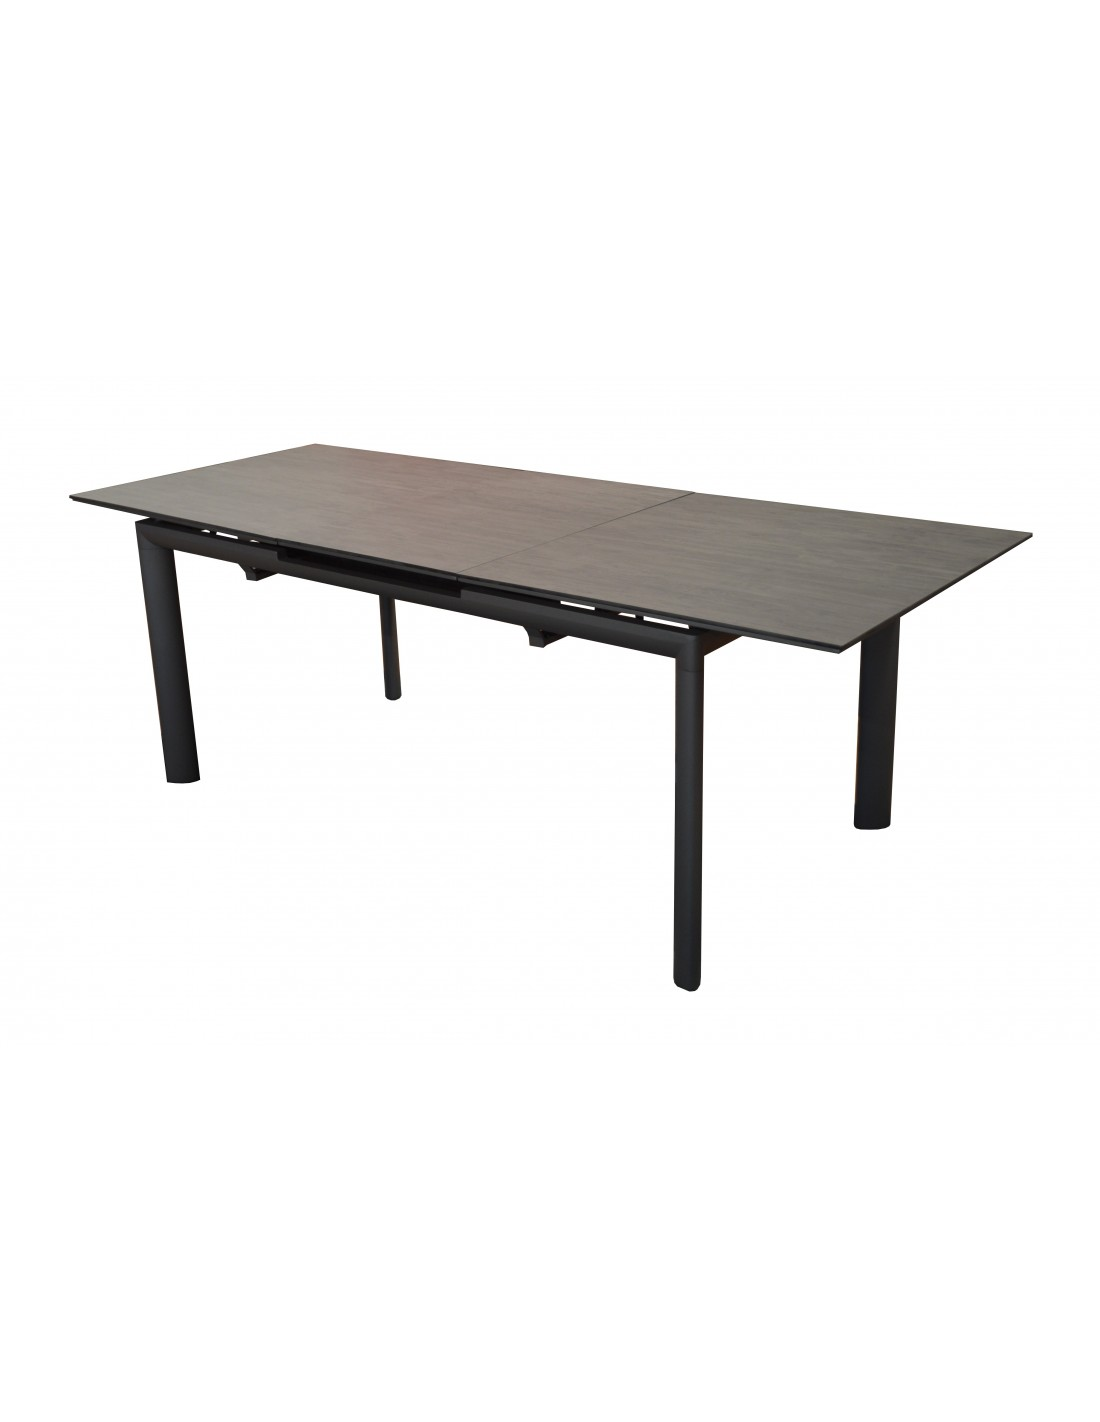 Table de jardin extensible hpl 84 images hegoa table for Table extensible 160